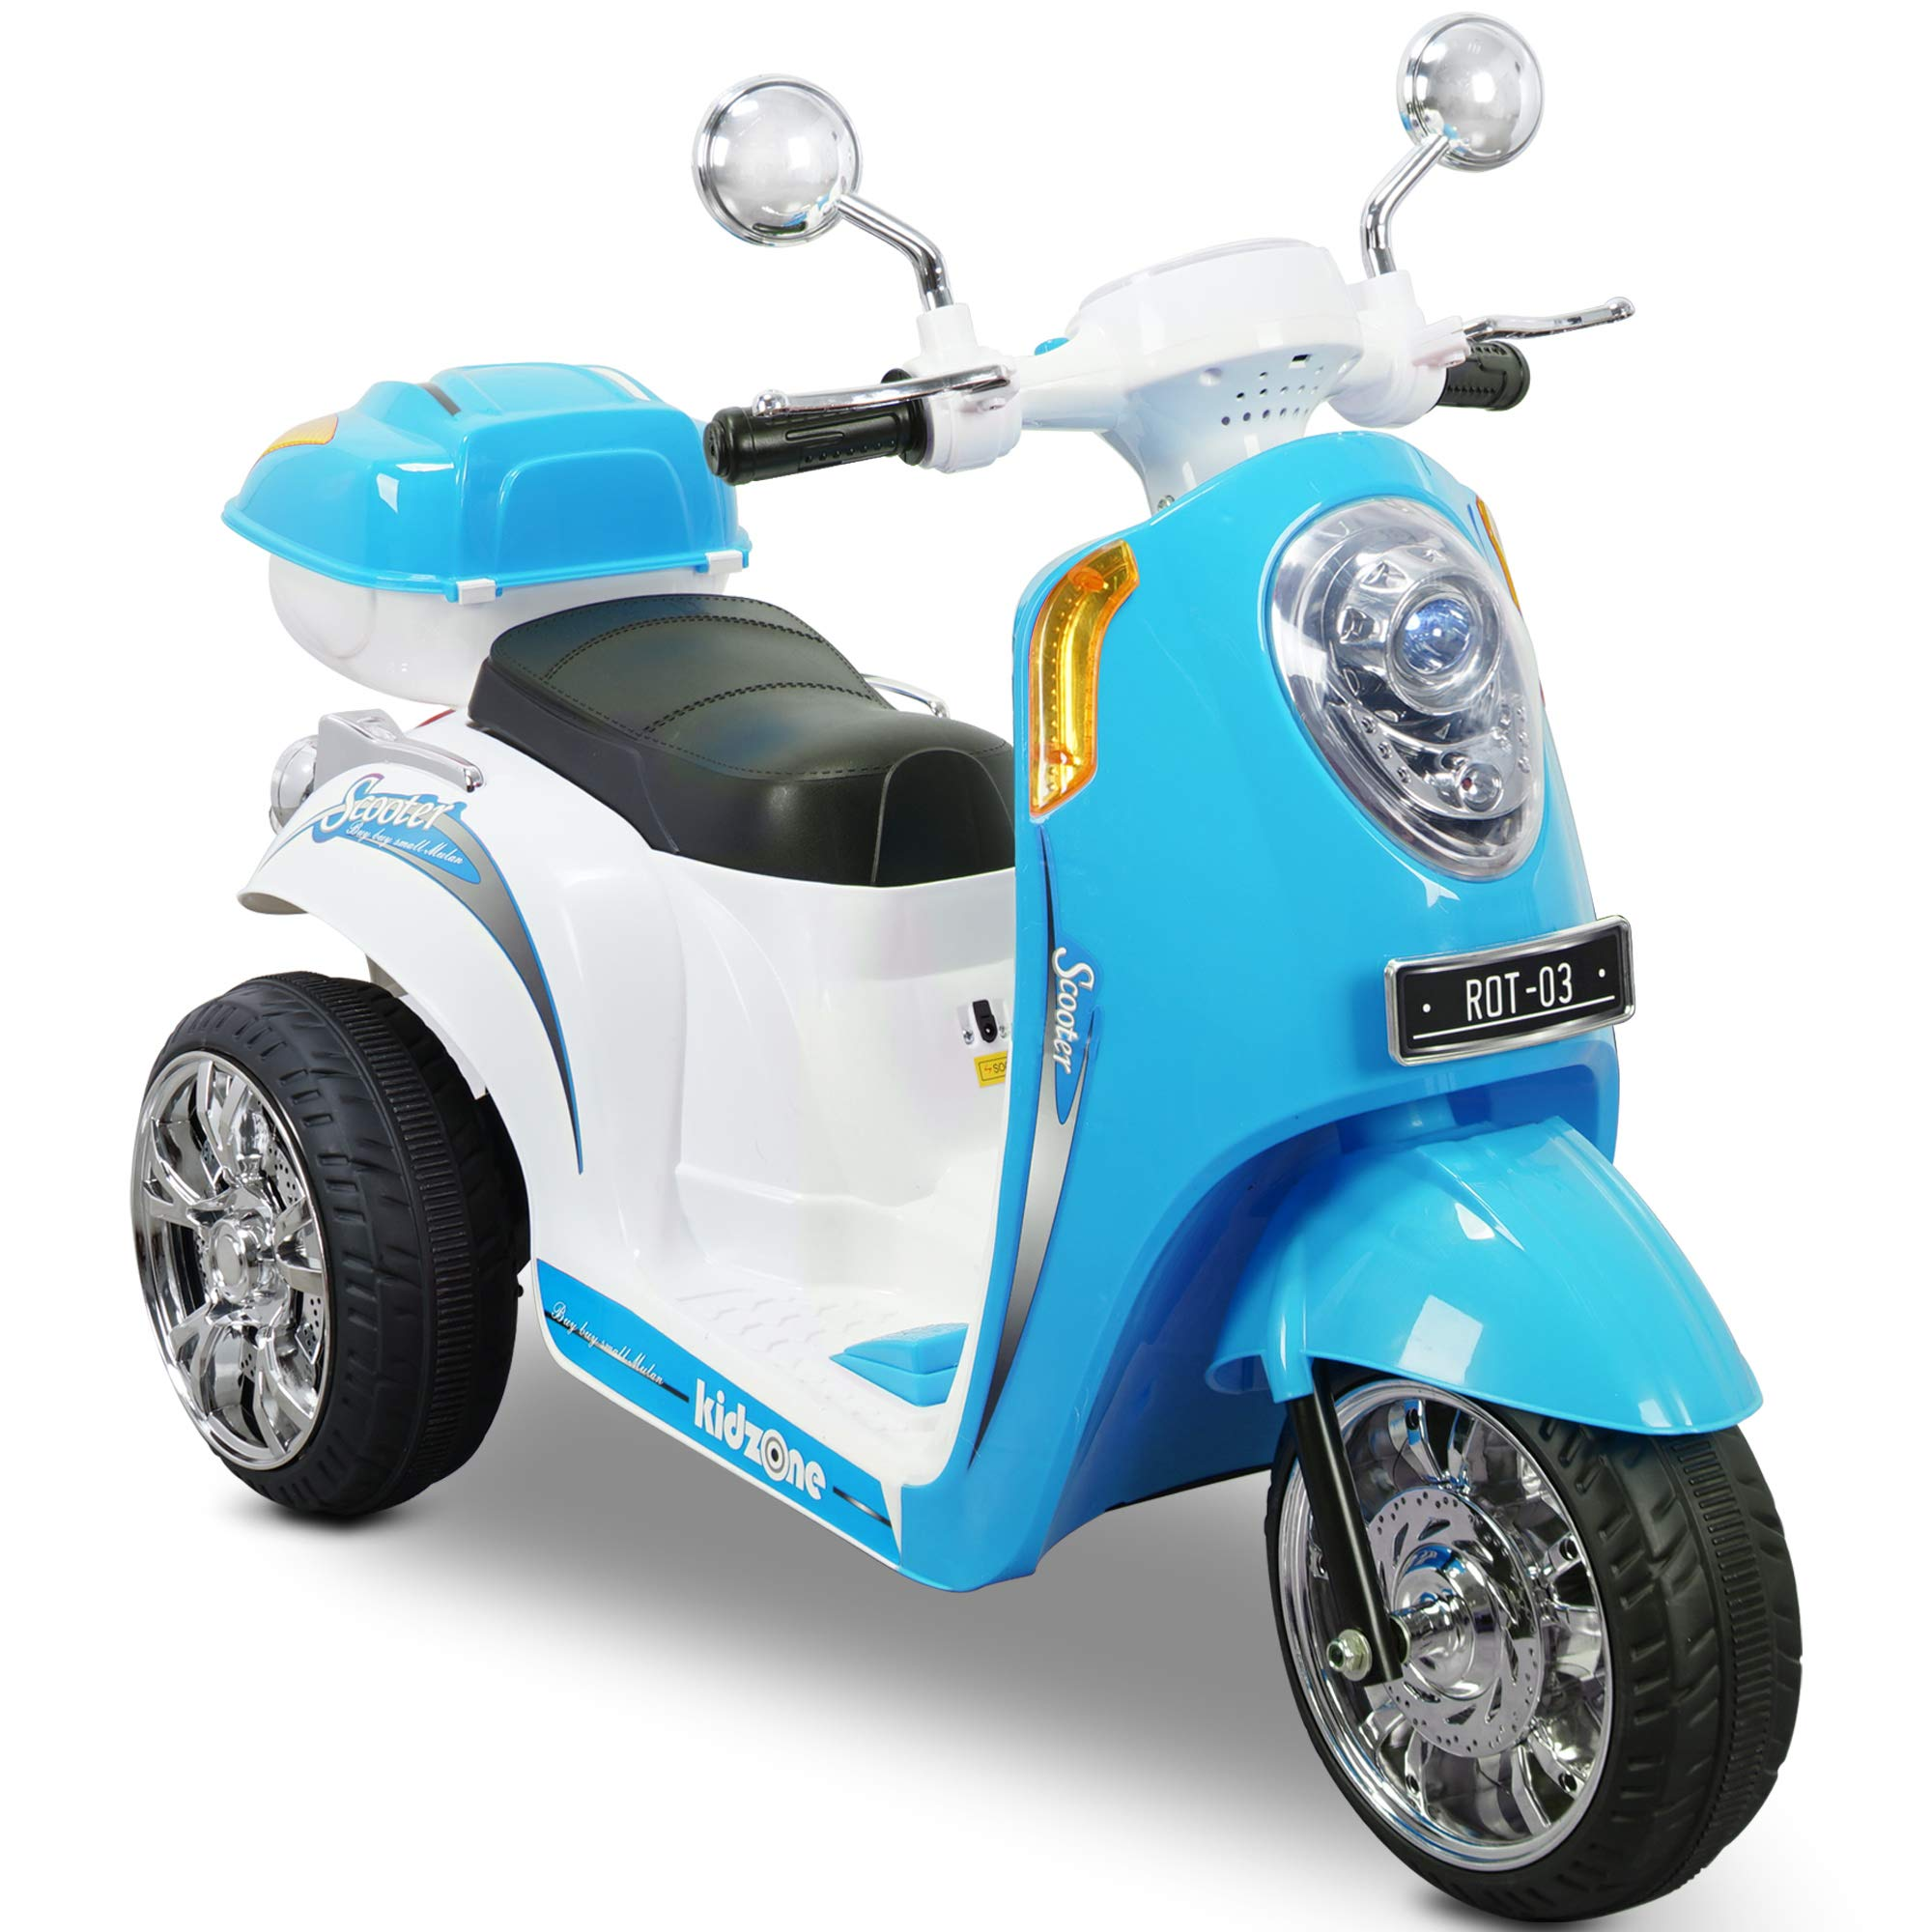 Kidzone Ride On Motorcycle Toy for Toddlers Aged 3+ Years - 6V Battery-Powered 3-Wheel Power Scooter with Music, Headlight, Horn, Storage Trunk, Key Switch - for Boys & Girls, Blue